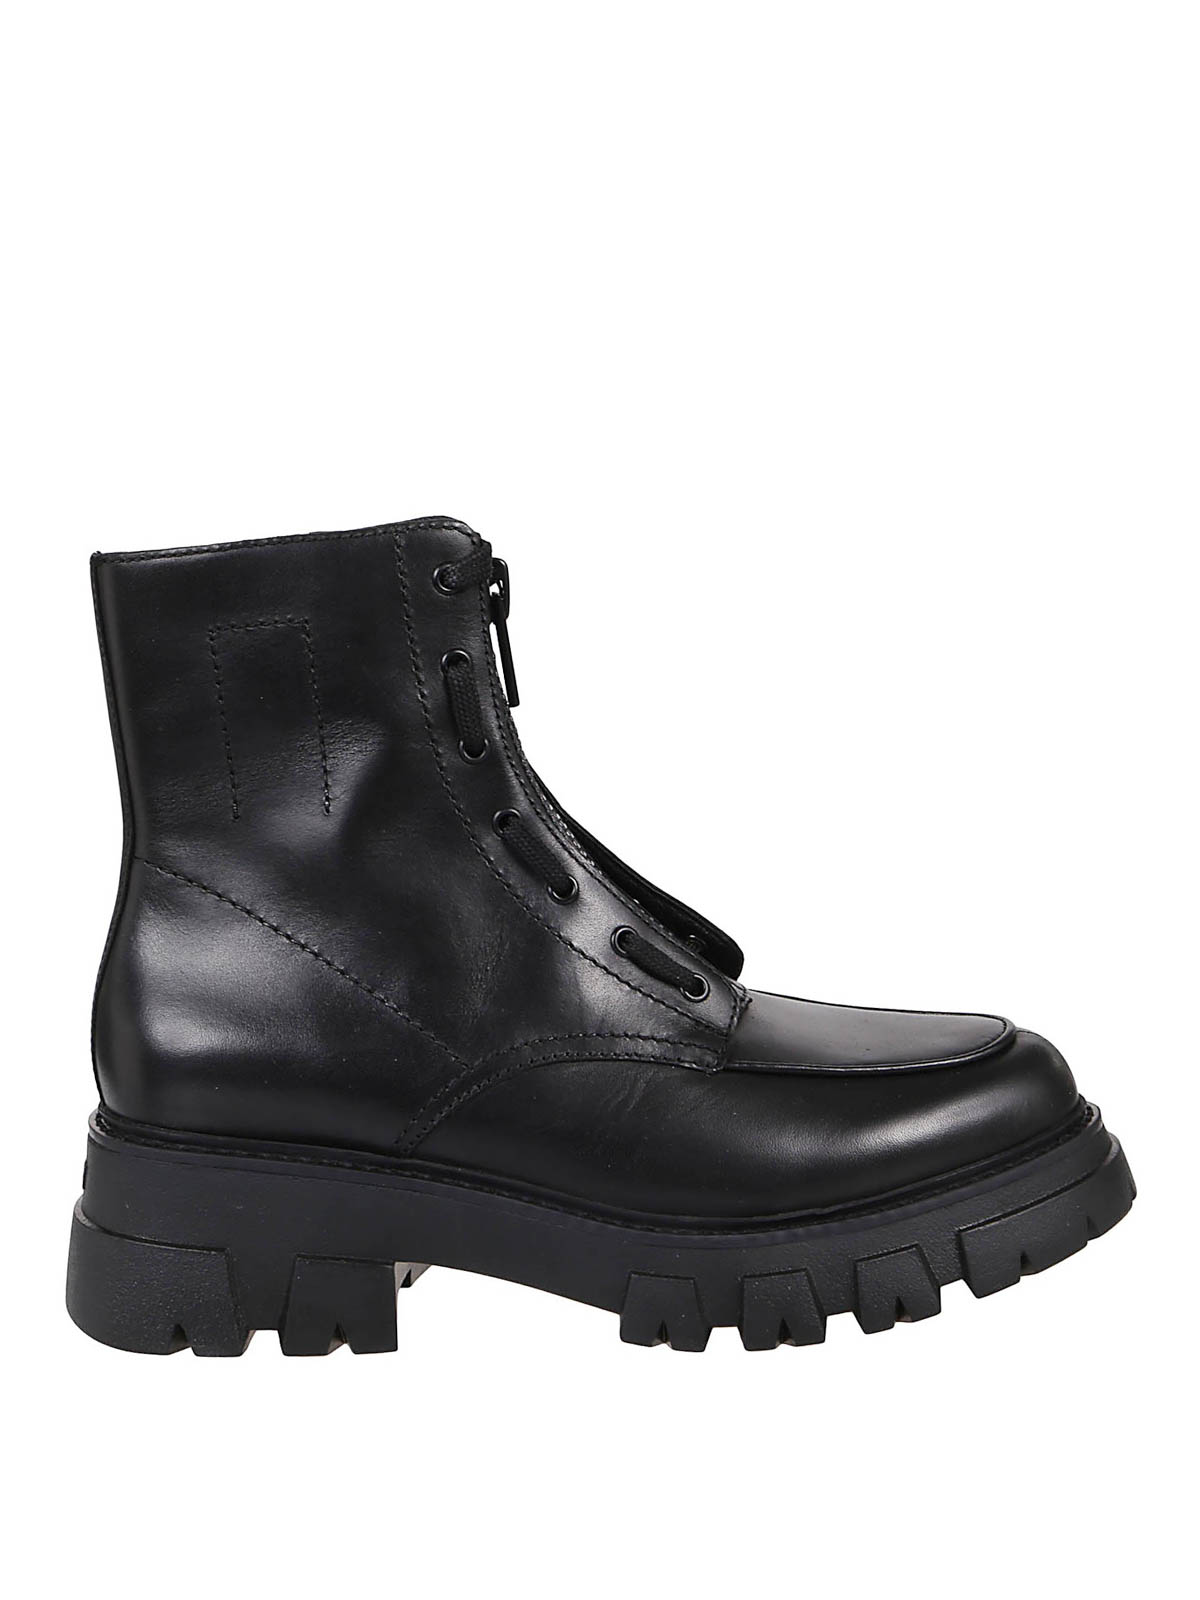 Ash Leathers LYNCH COMBAT BOOTS